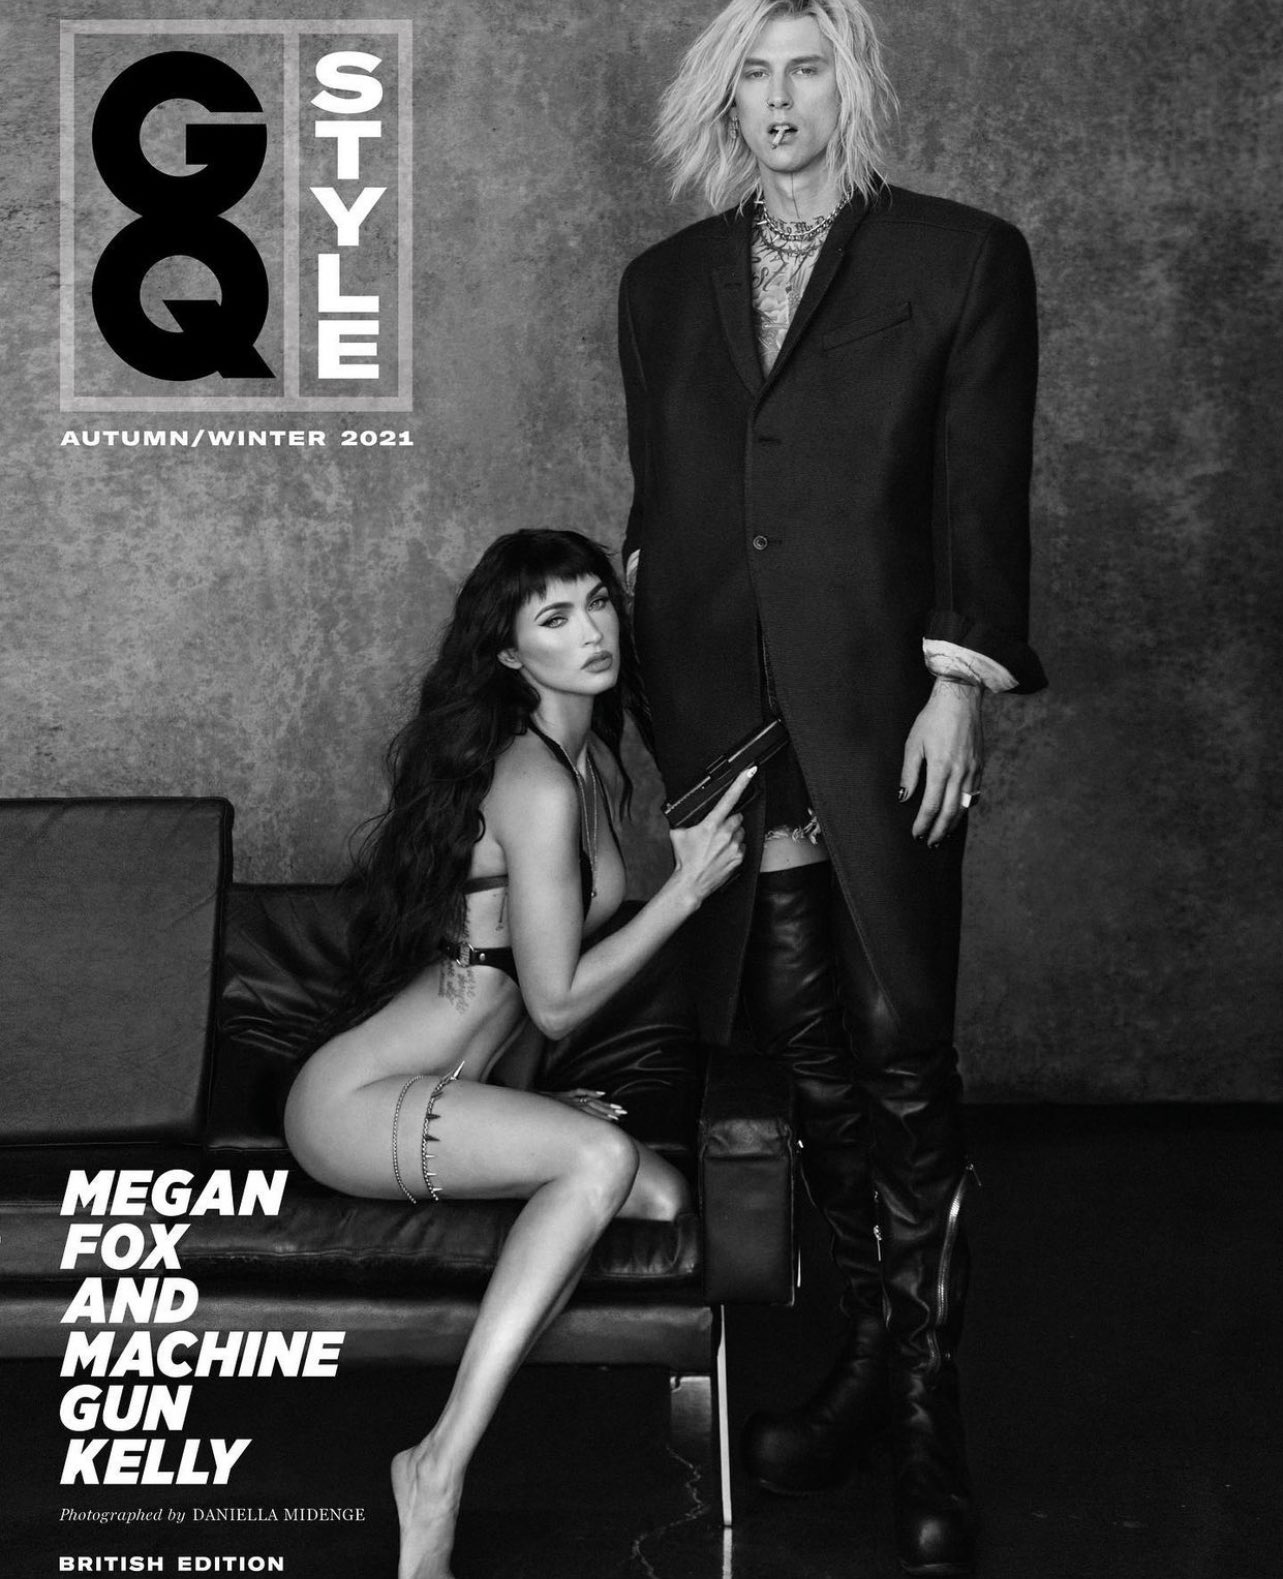 Megan Fox poses NAKED in just a pistol holster while Machine Gun Kelly dons thigh-high boots in VERY risqué shoot